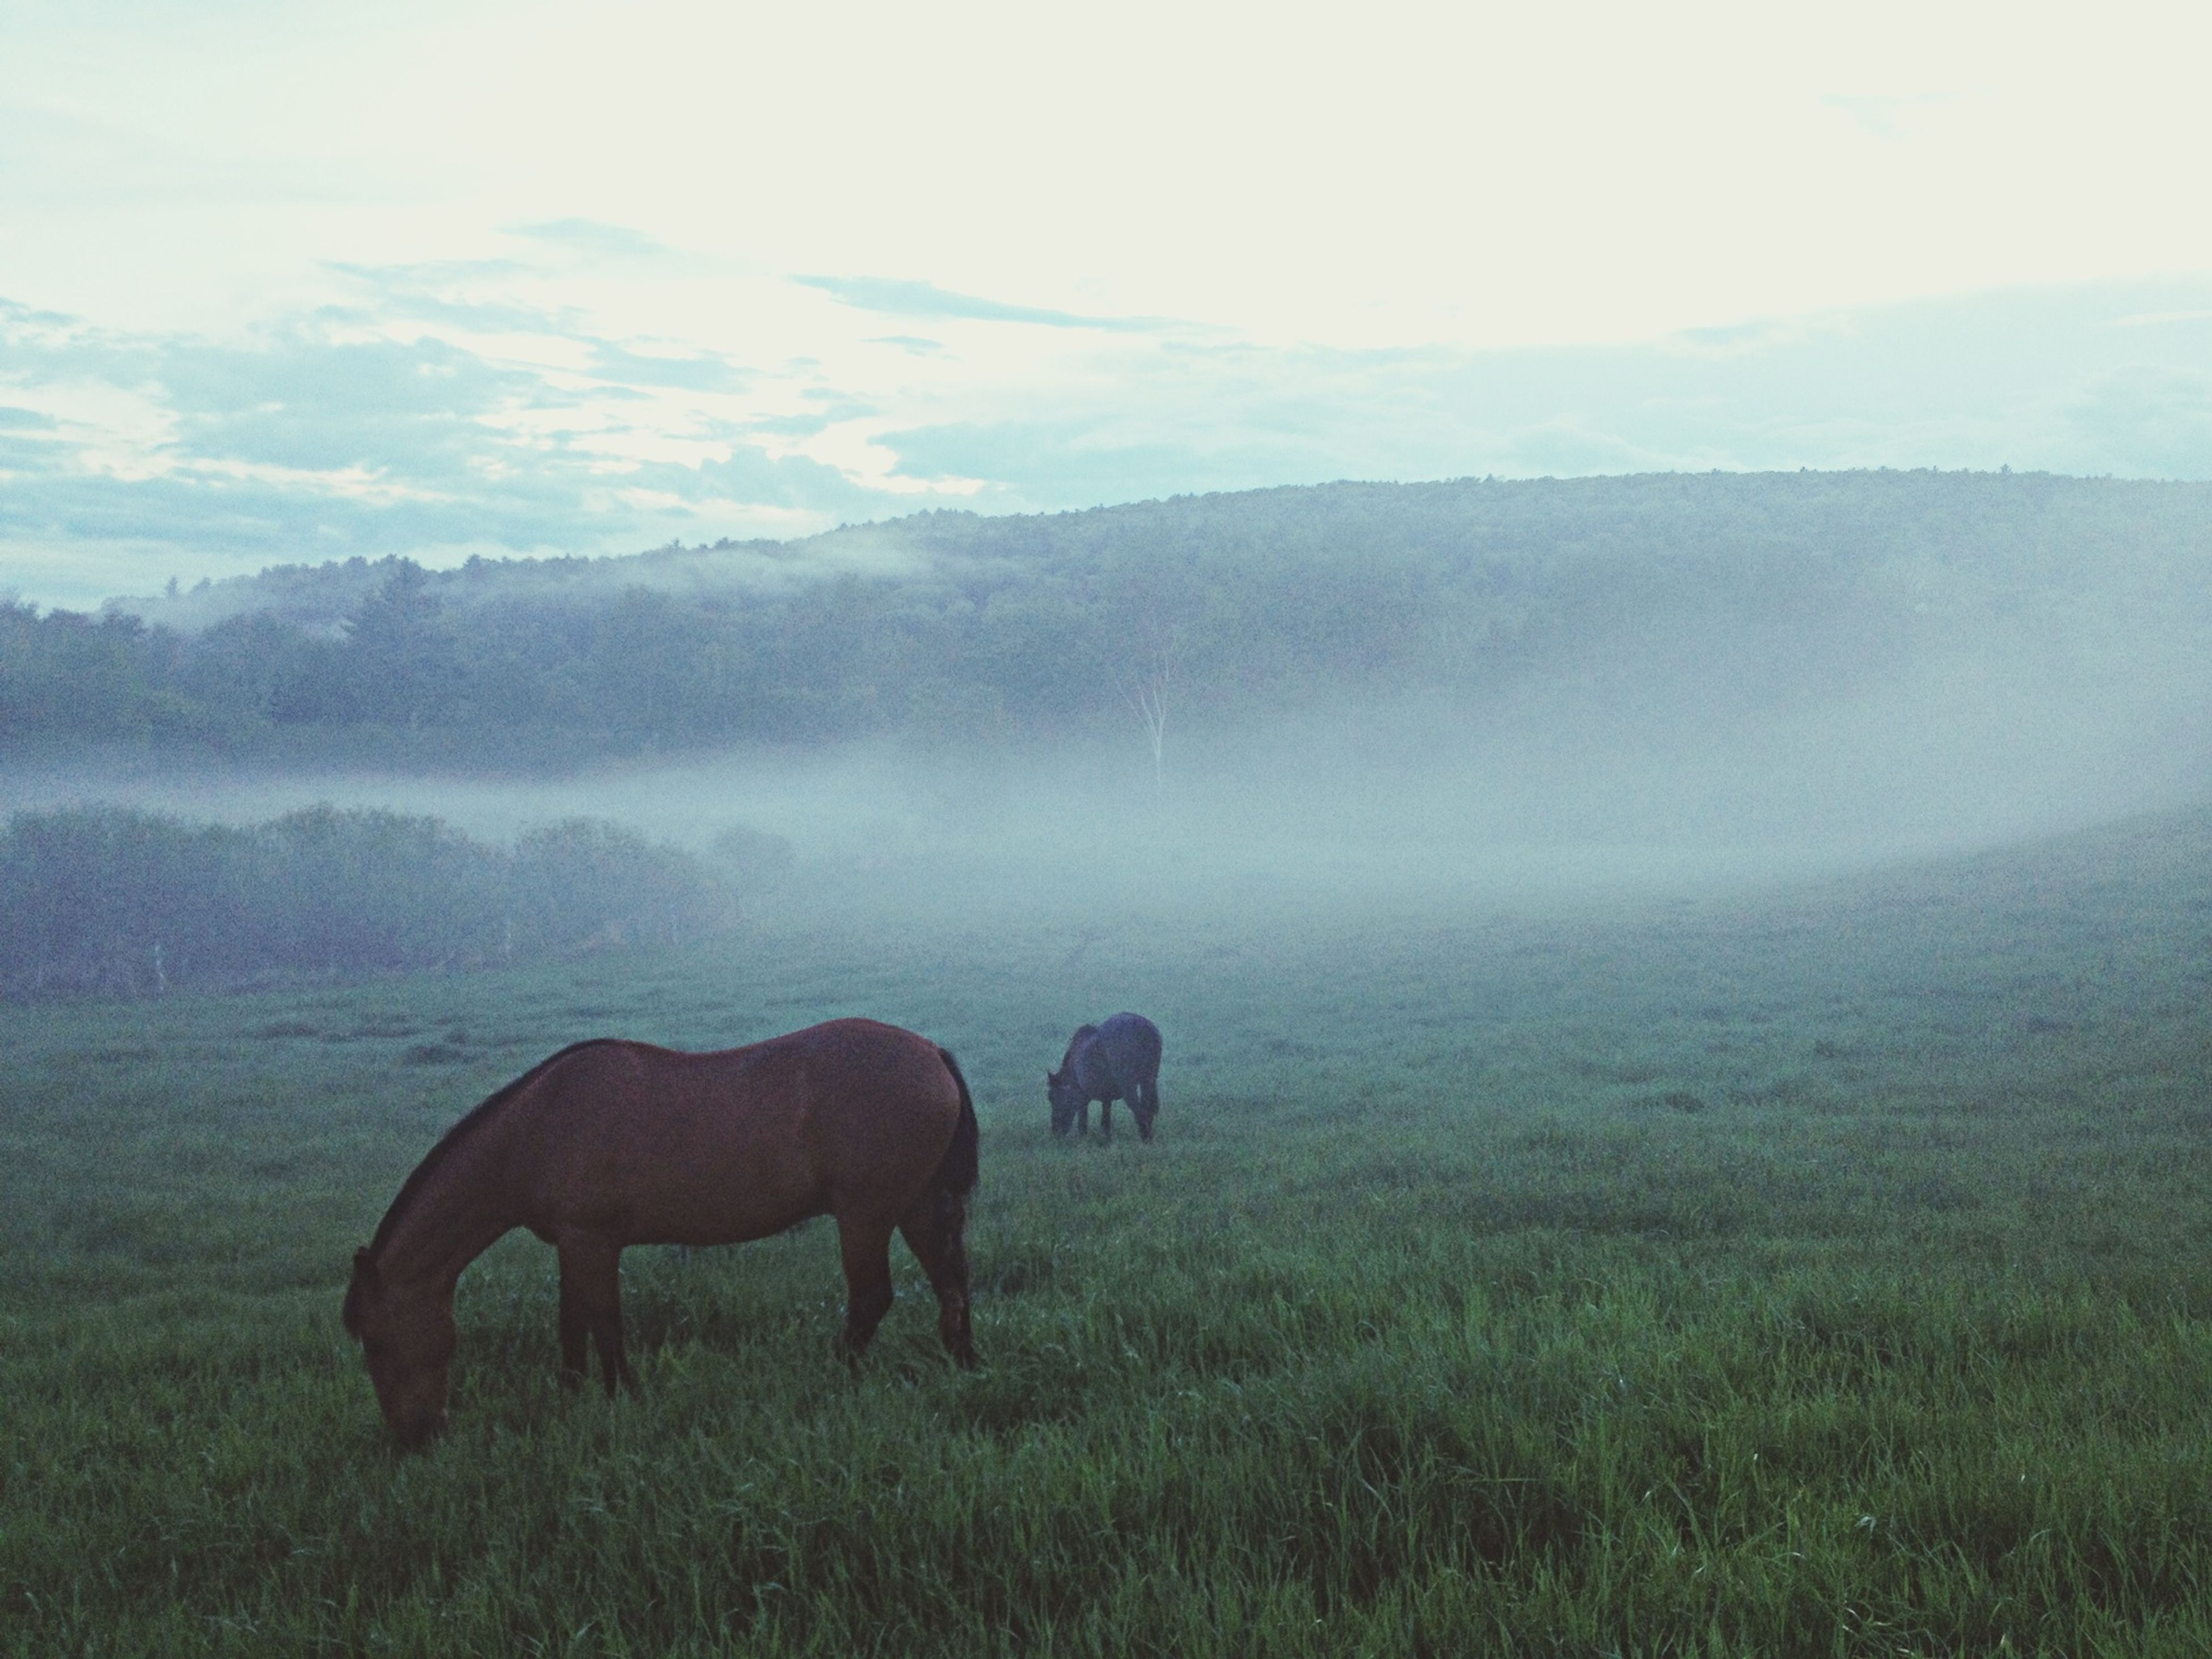 animal themes, mammal, domestic animals, grass, field, horse, livestock, grazing, landscape, one animal, grassy, herbivorous, standing, nature, fog, tranquil scene, two animals, tranquility, beauty in nature, cow